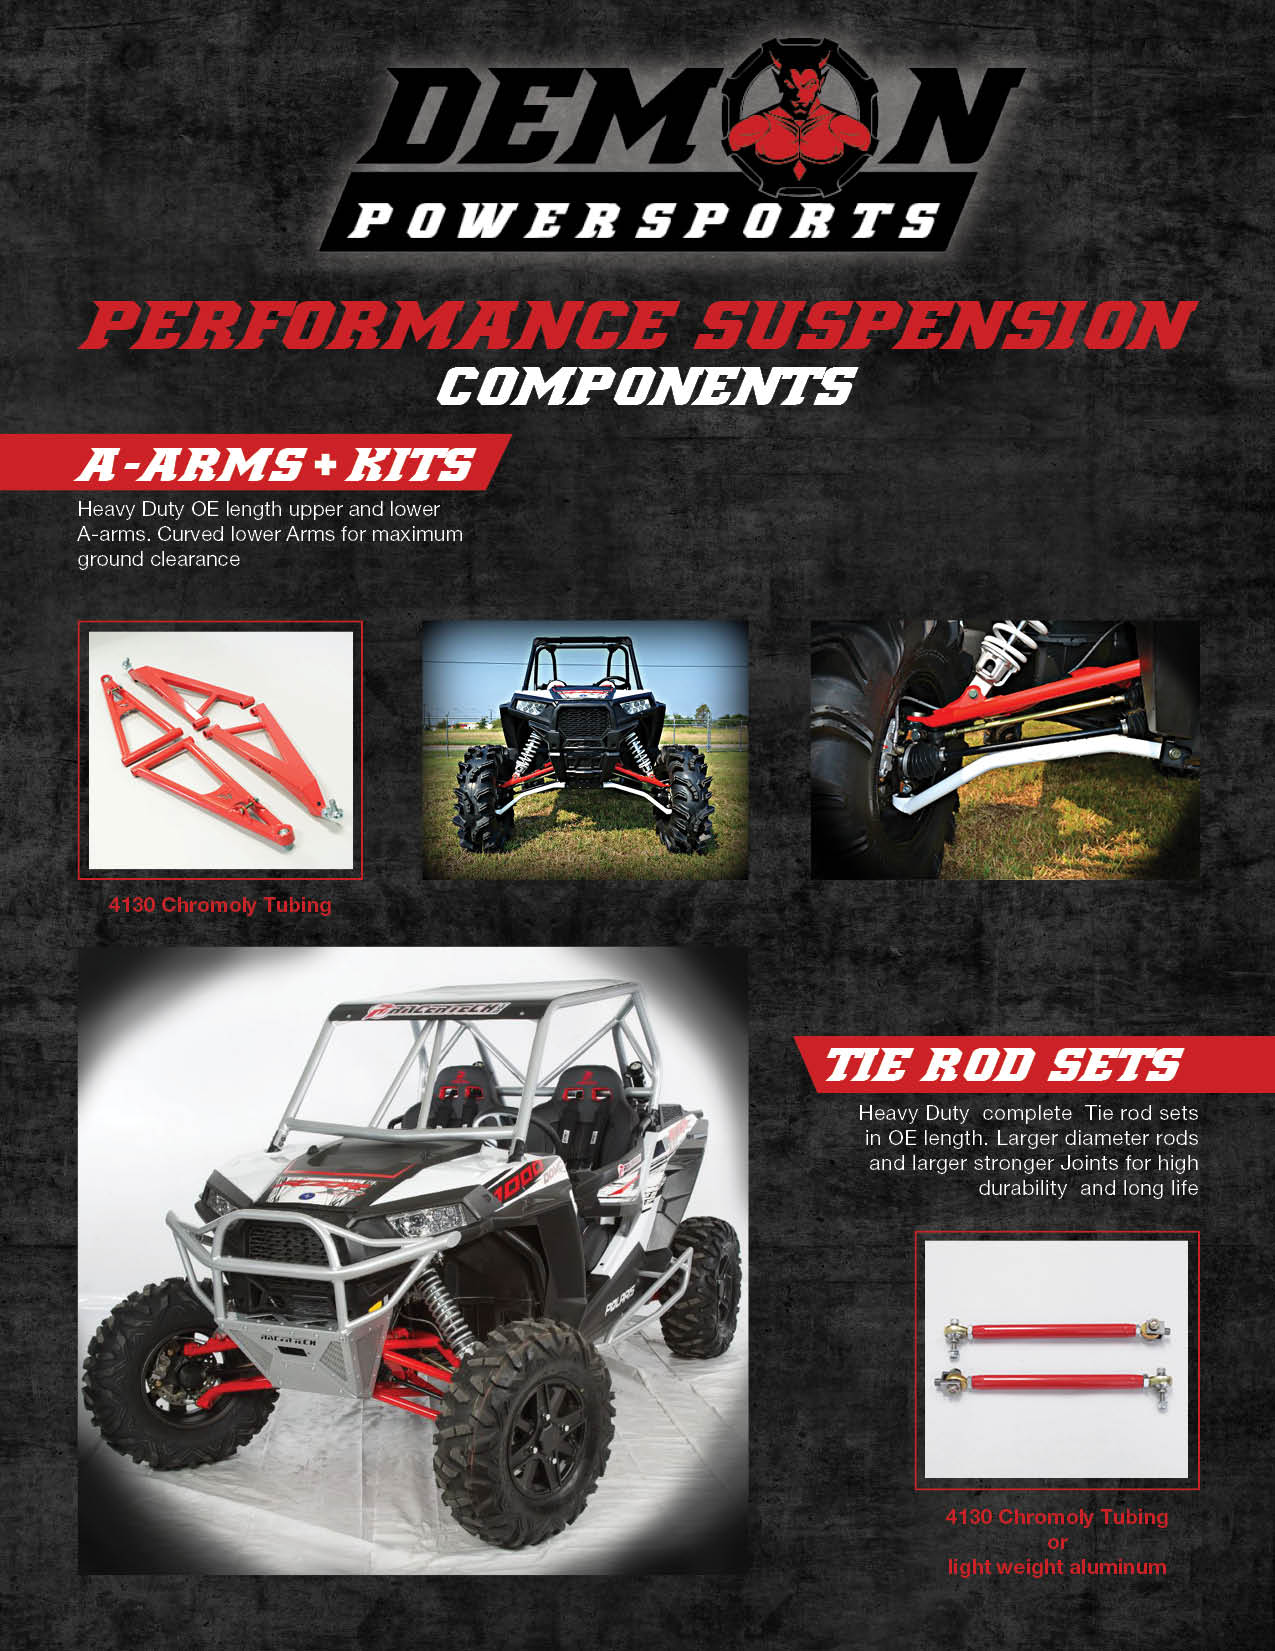 Demon Performance Suspension Components